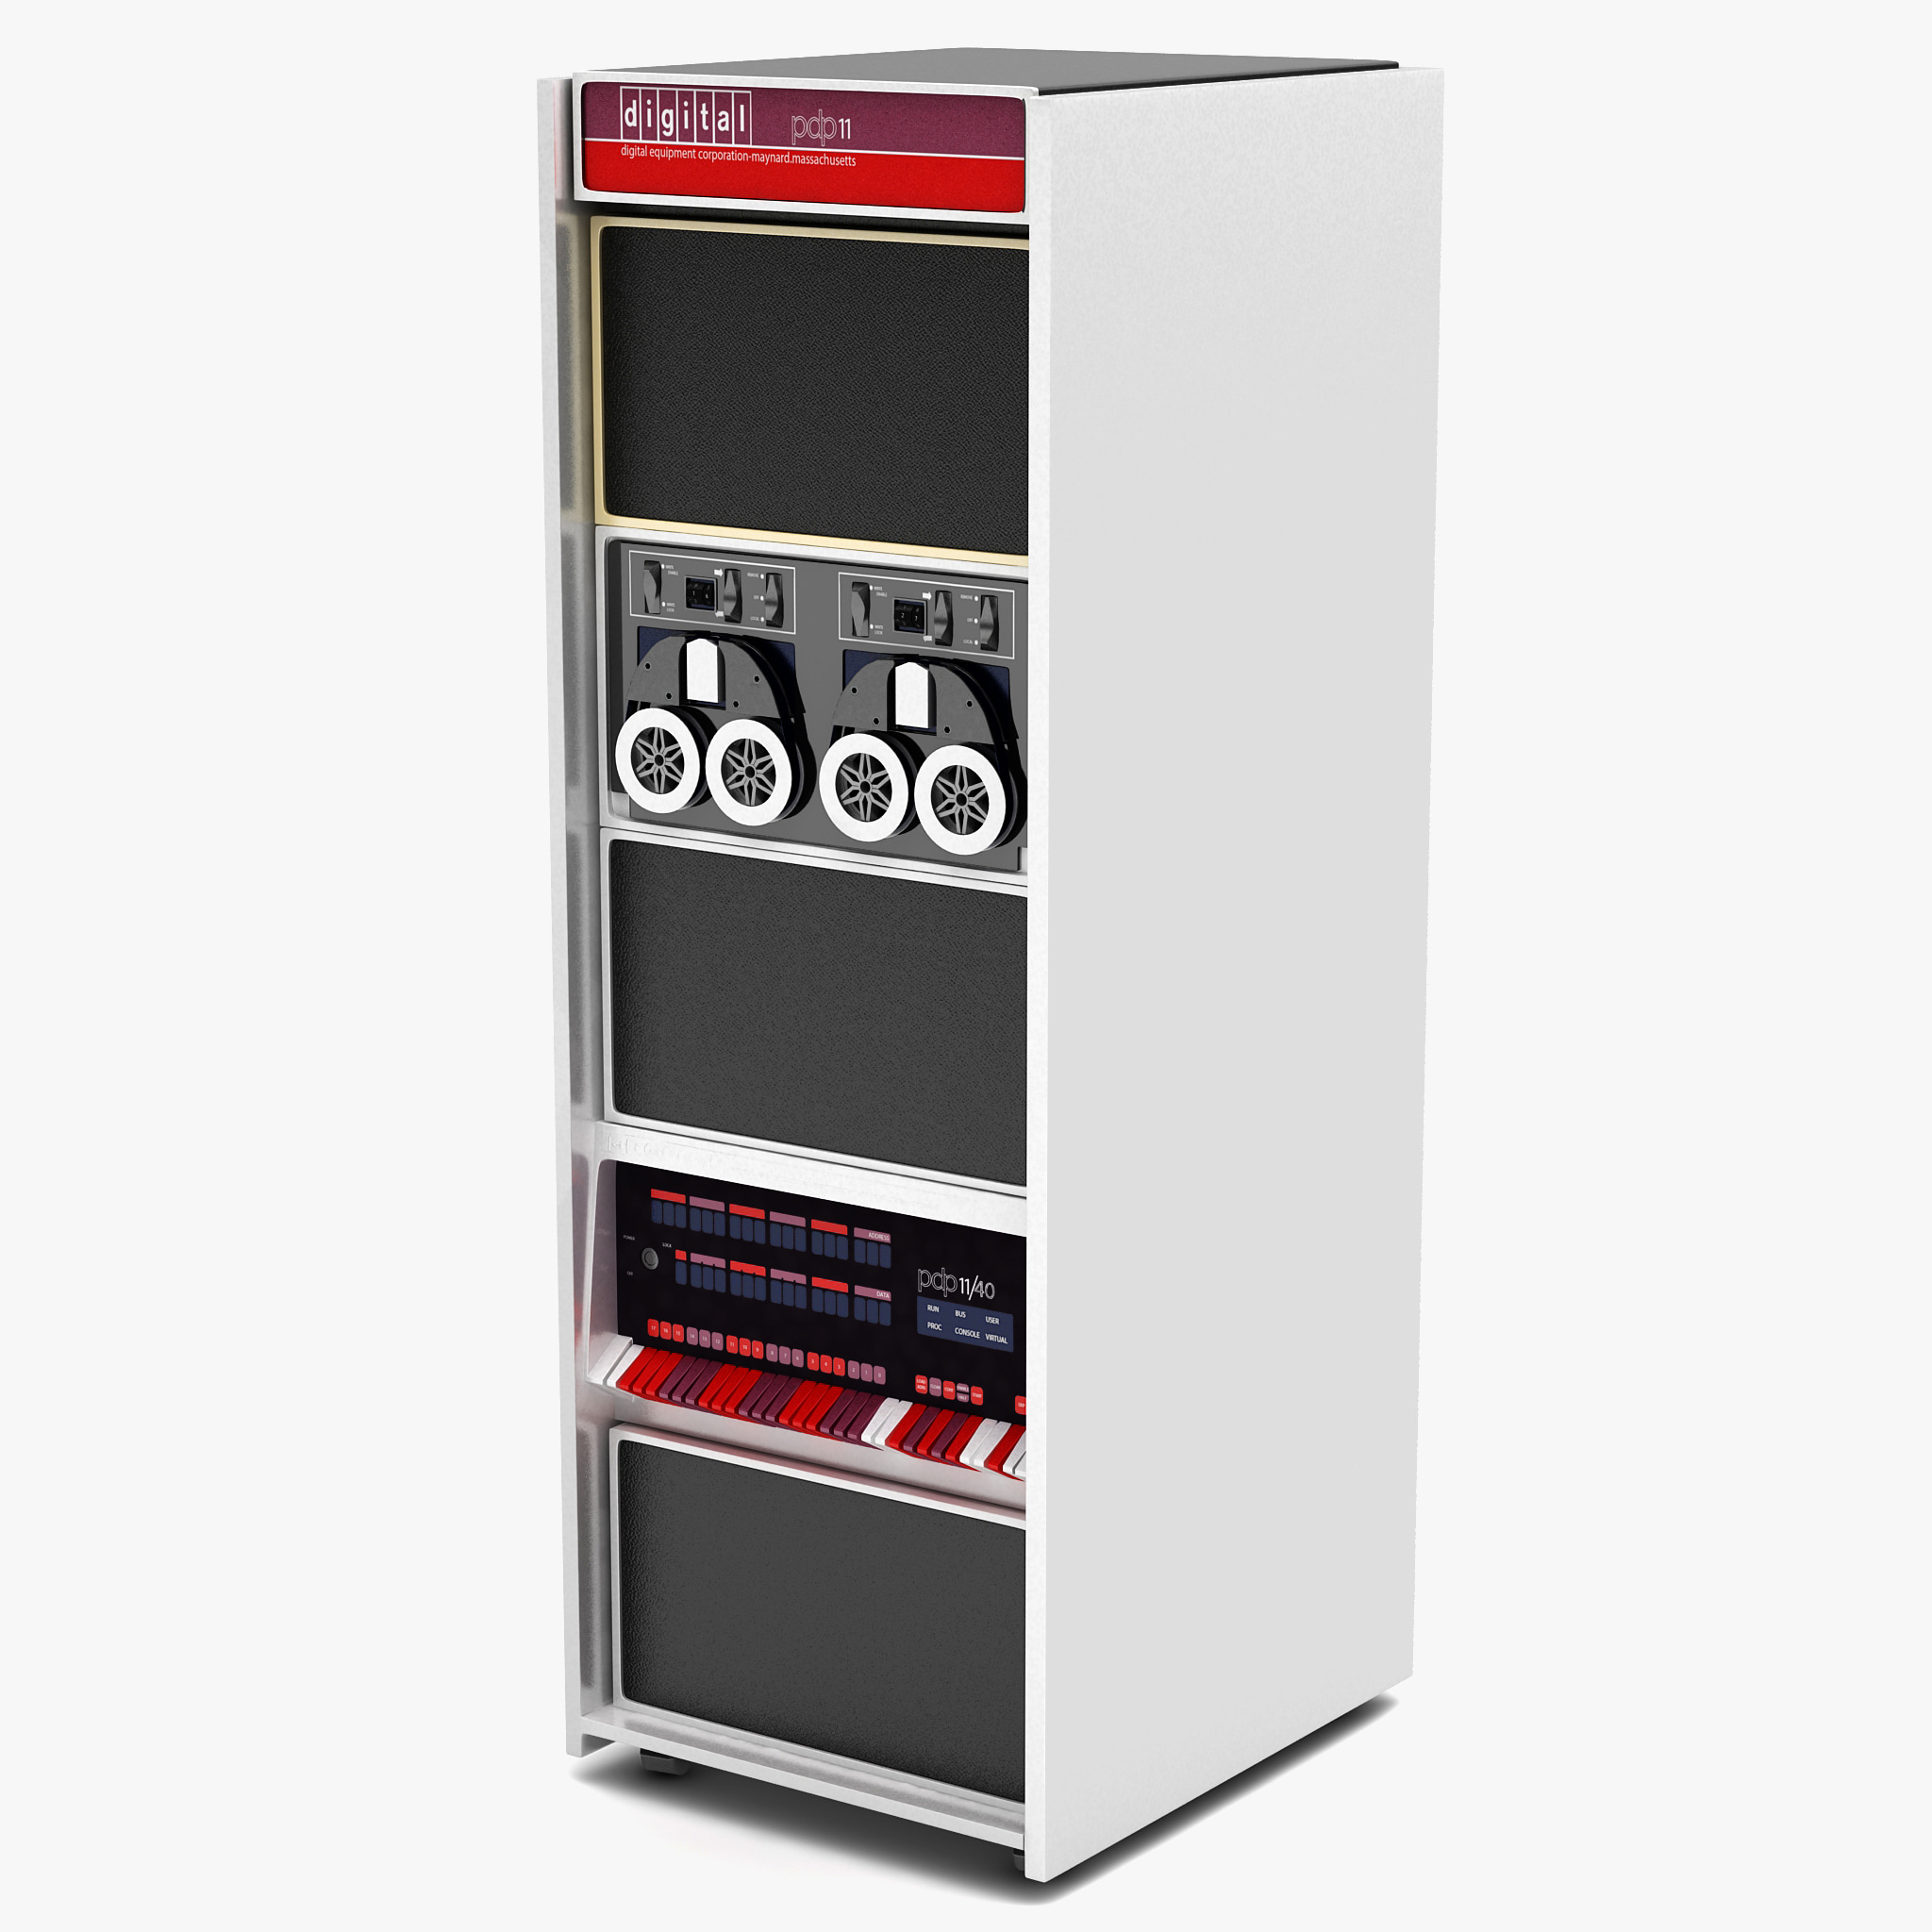 3d model of old minicomputer pdp-11